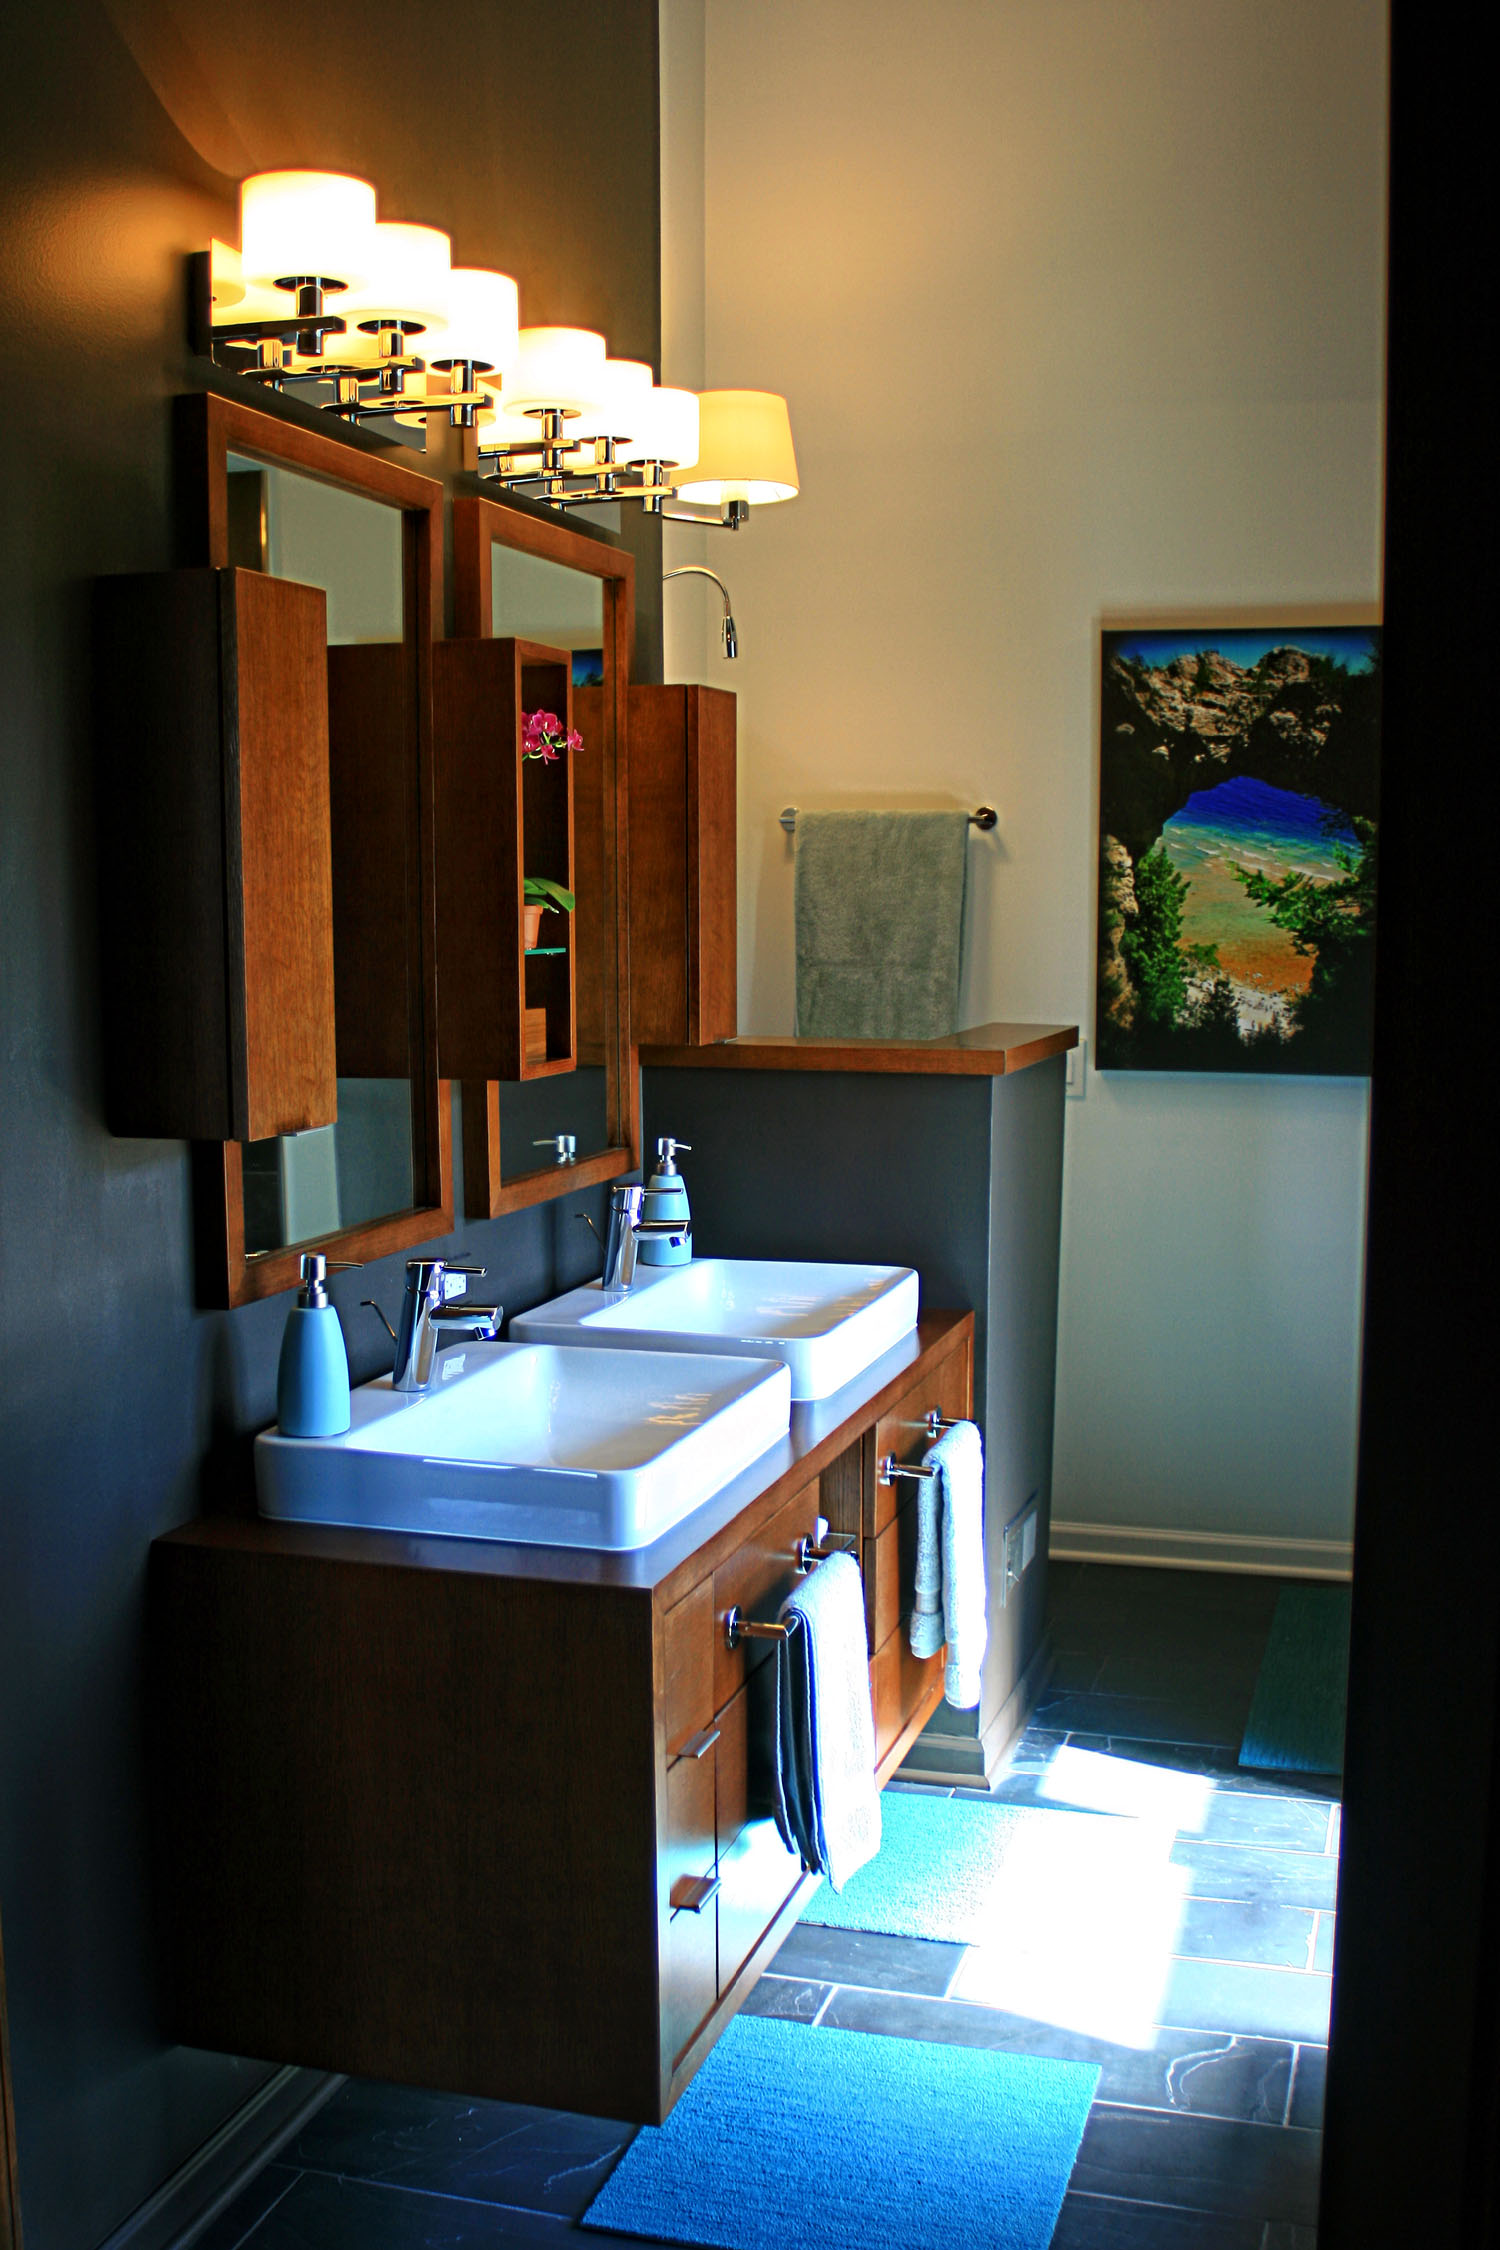 5 masterbath entry view of wall mount vanity.jpg